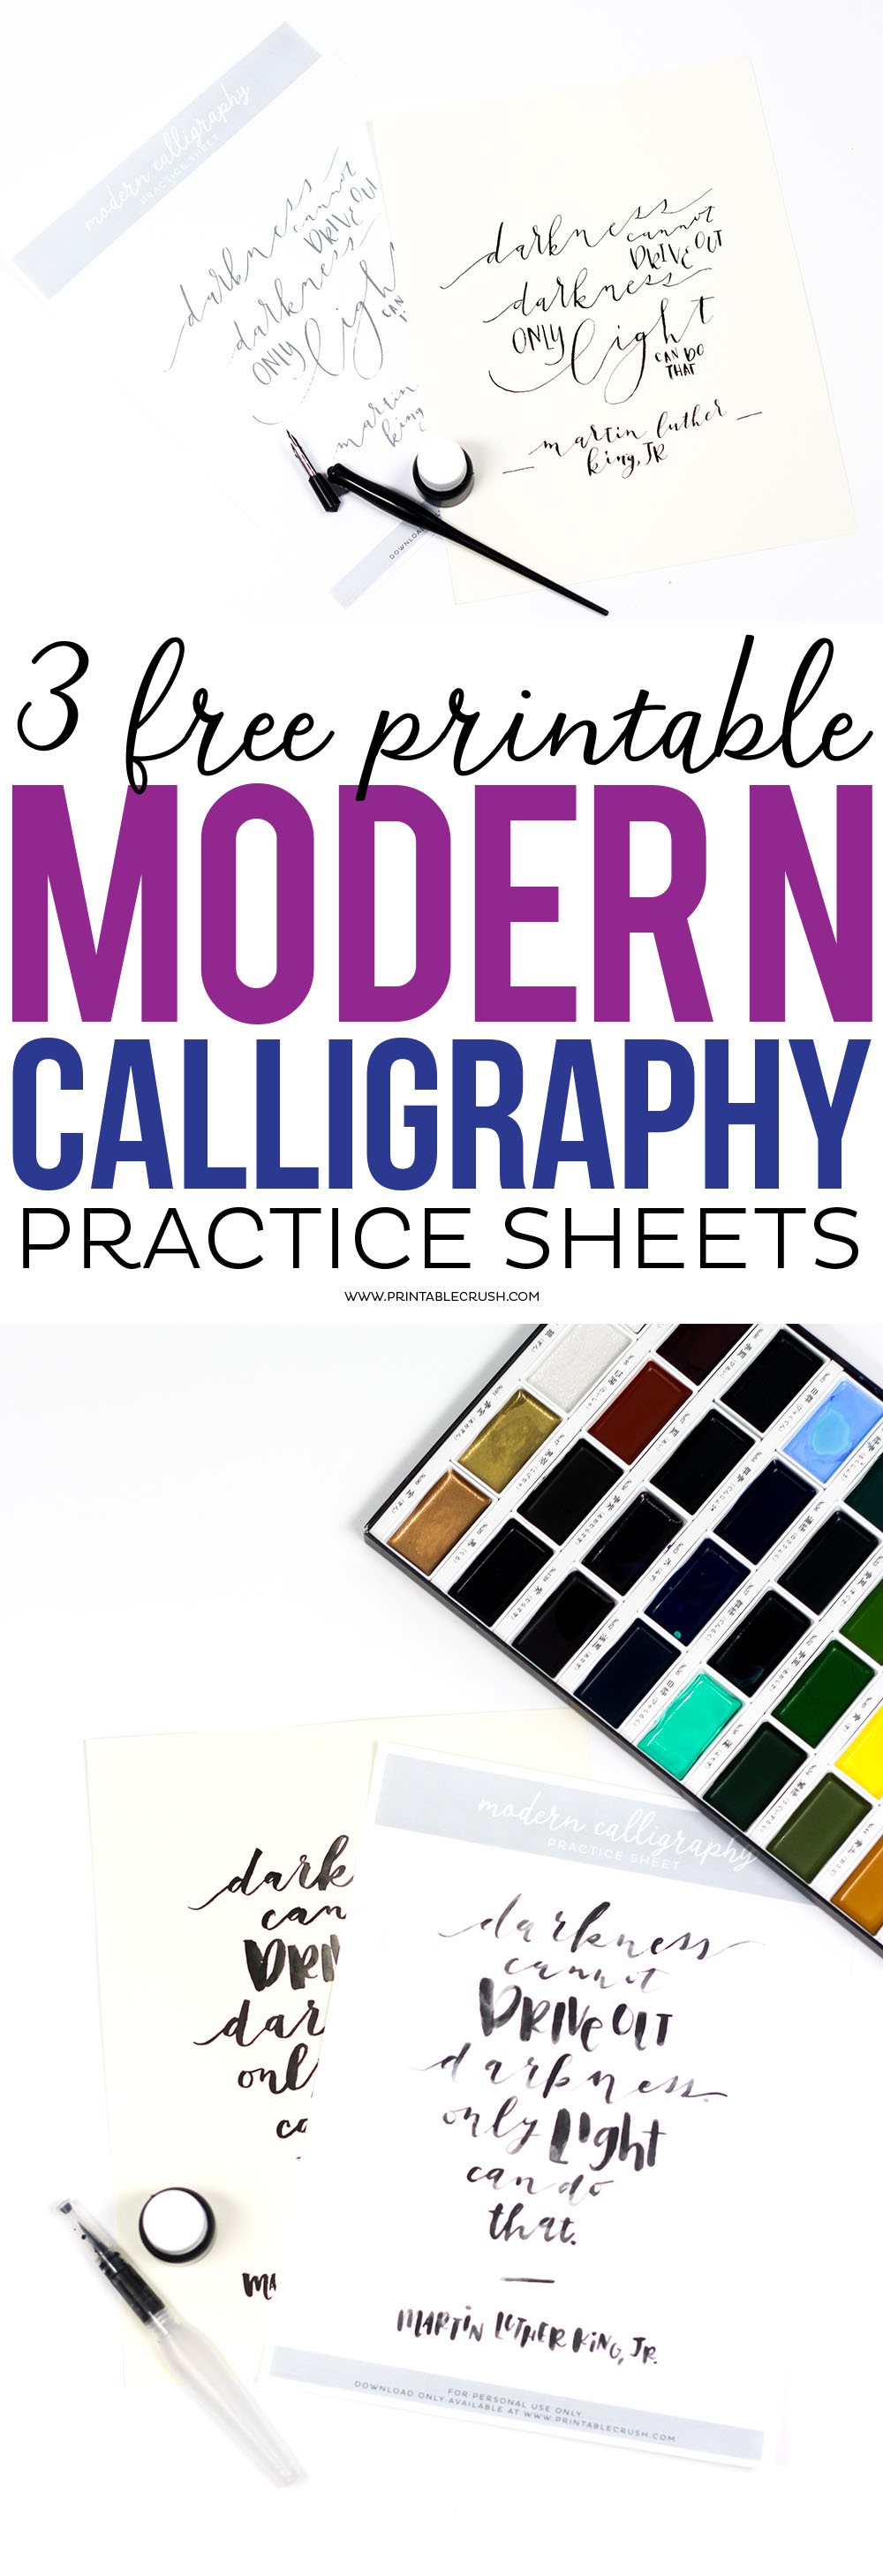 Download these 3 Free Printable Modern Calligraphy Practice Sheets to try 3 different lettering styles. Plus, discover new calligraphy materials.